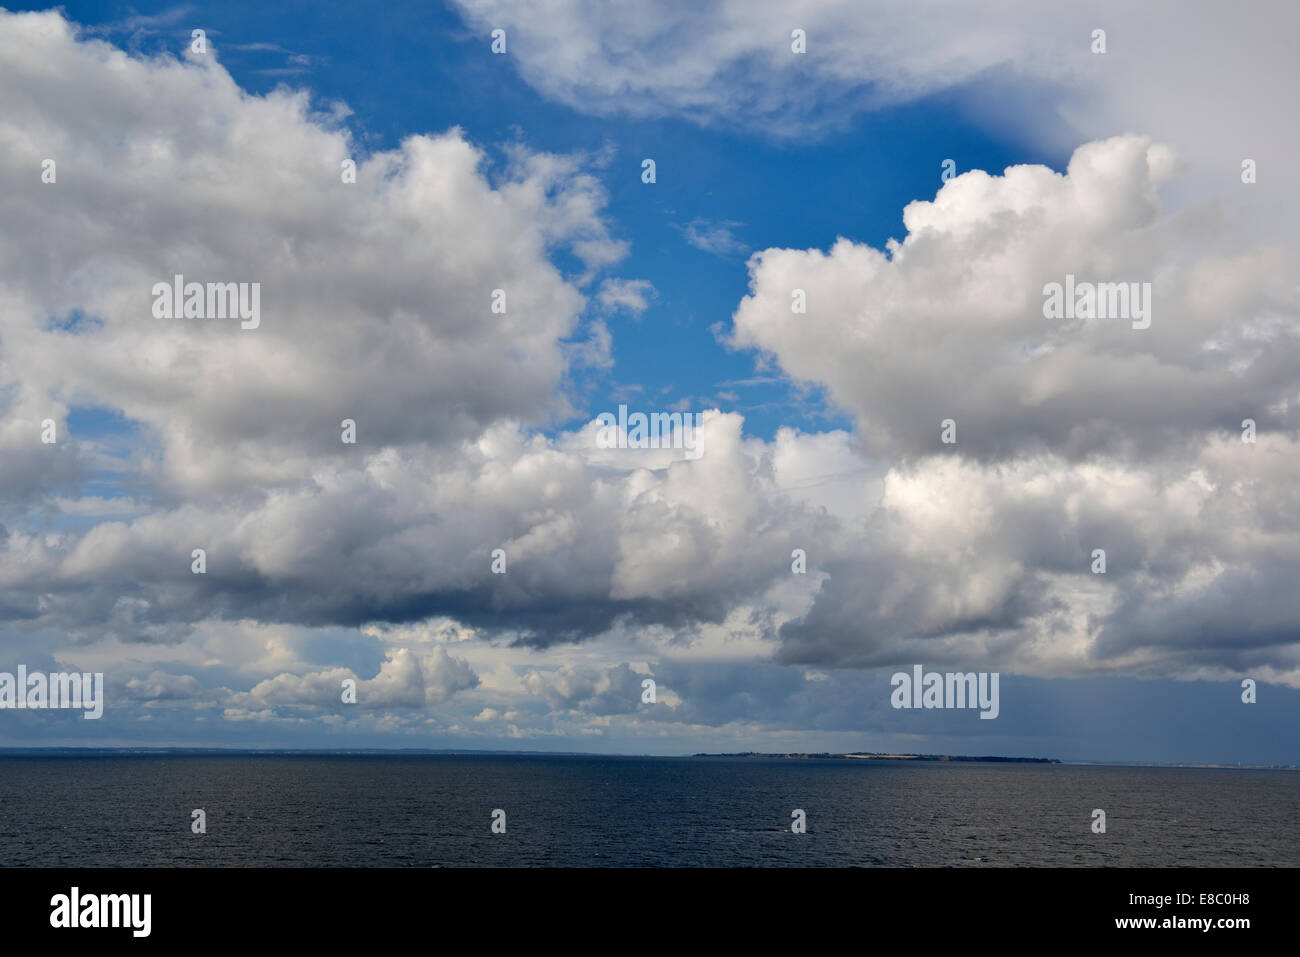 Baltic Sea, View from Copenhagen Ferry to Oslo, Norway 140818_62384 - Stock Image